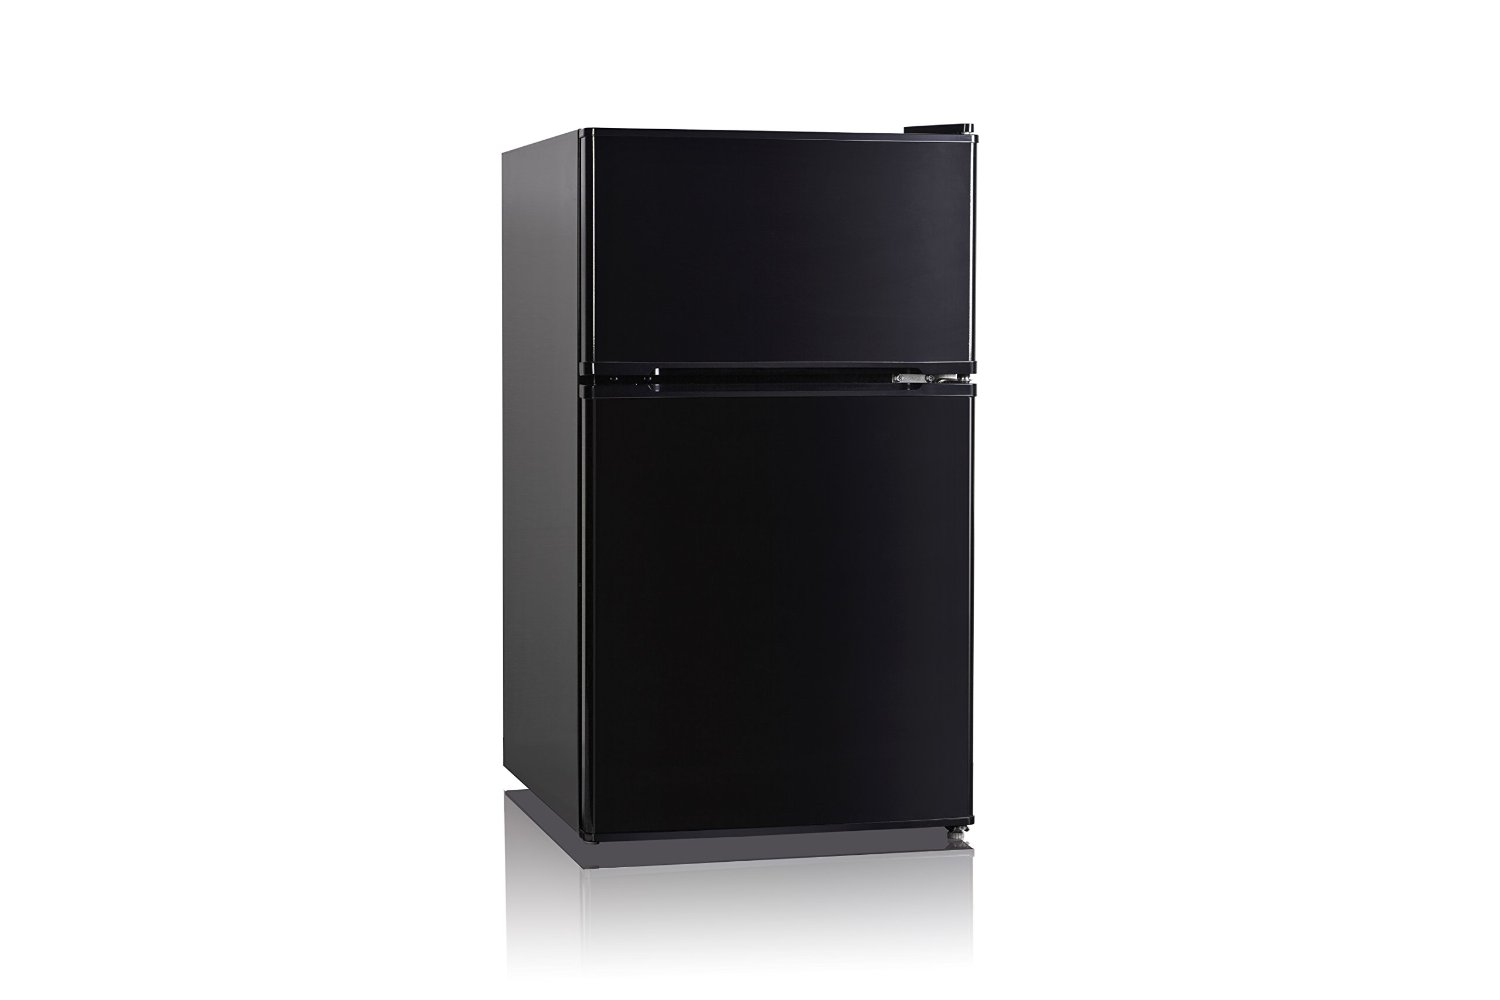 Midea WHD-127FB1 Compact Reversible Double Door Refrigerator and Freezer, 3.5 Cubic Feet, Black